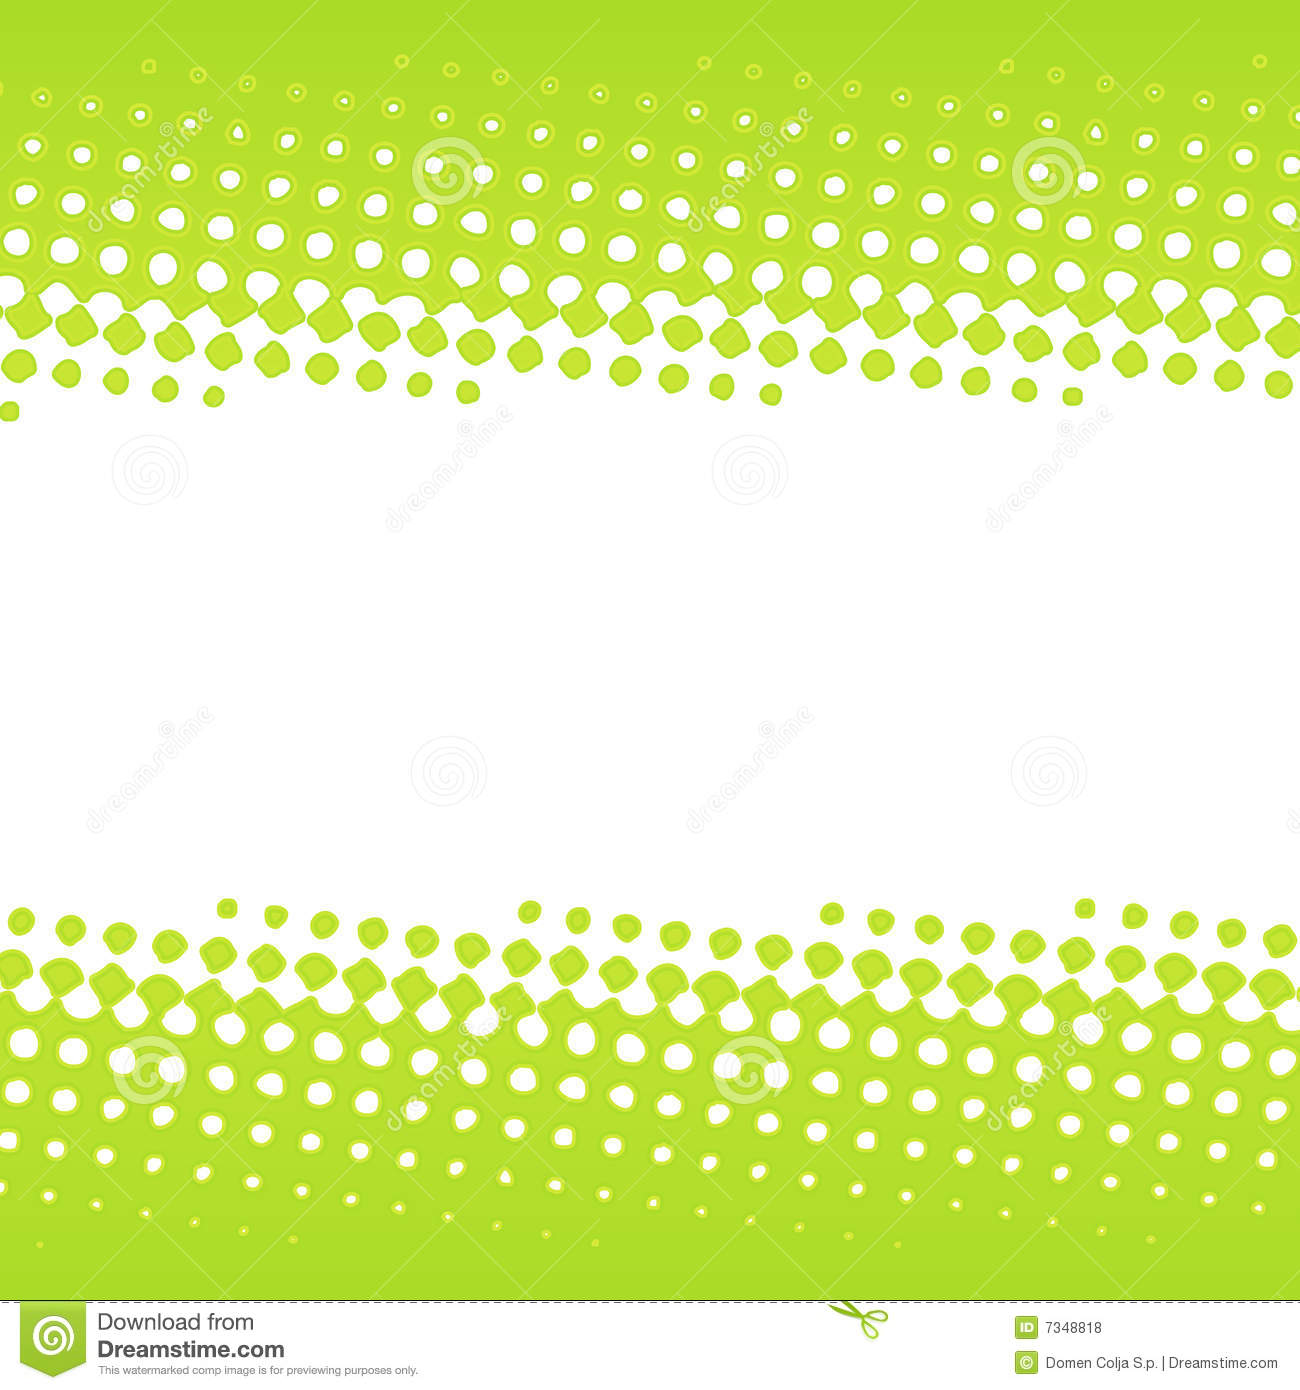 Green halftone banner design royalty free stock photos for Green plans